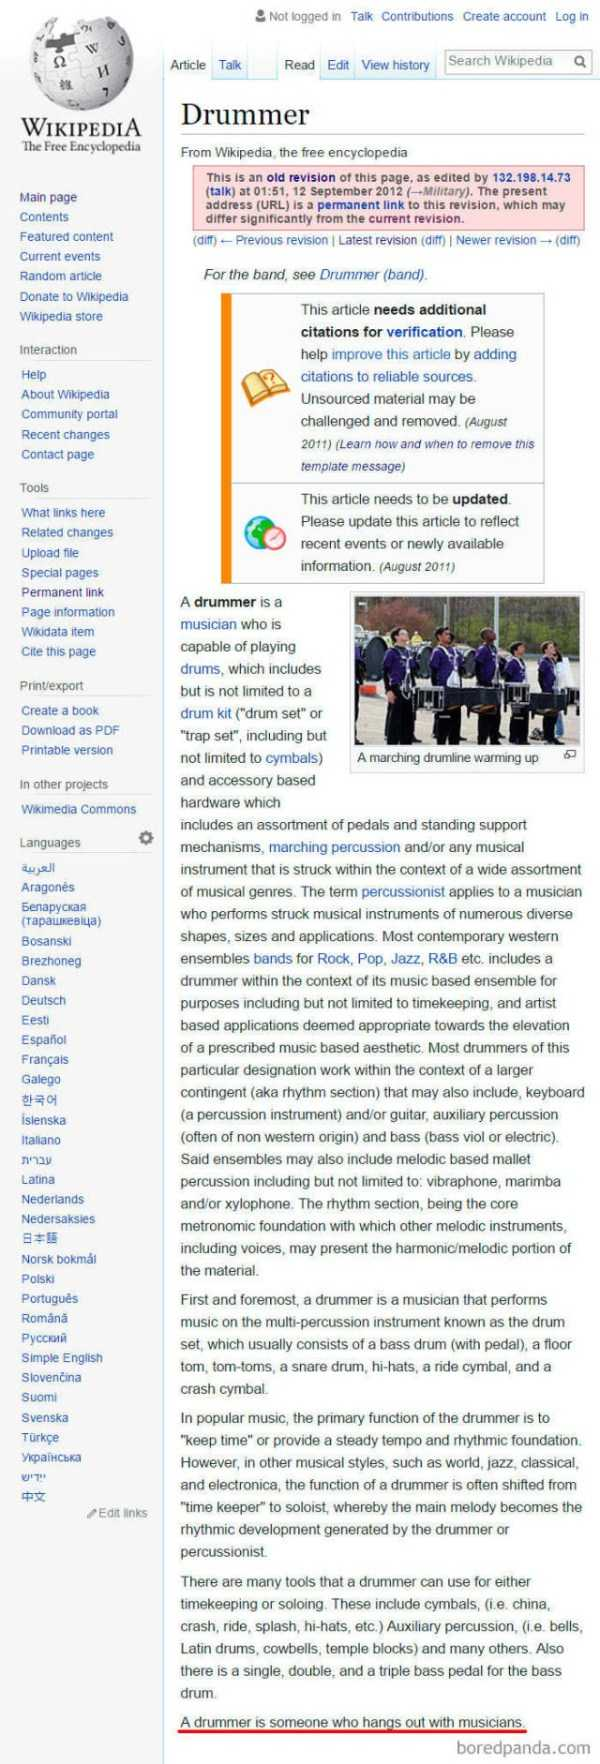 funny-wikipedia-fails (12)